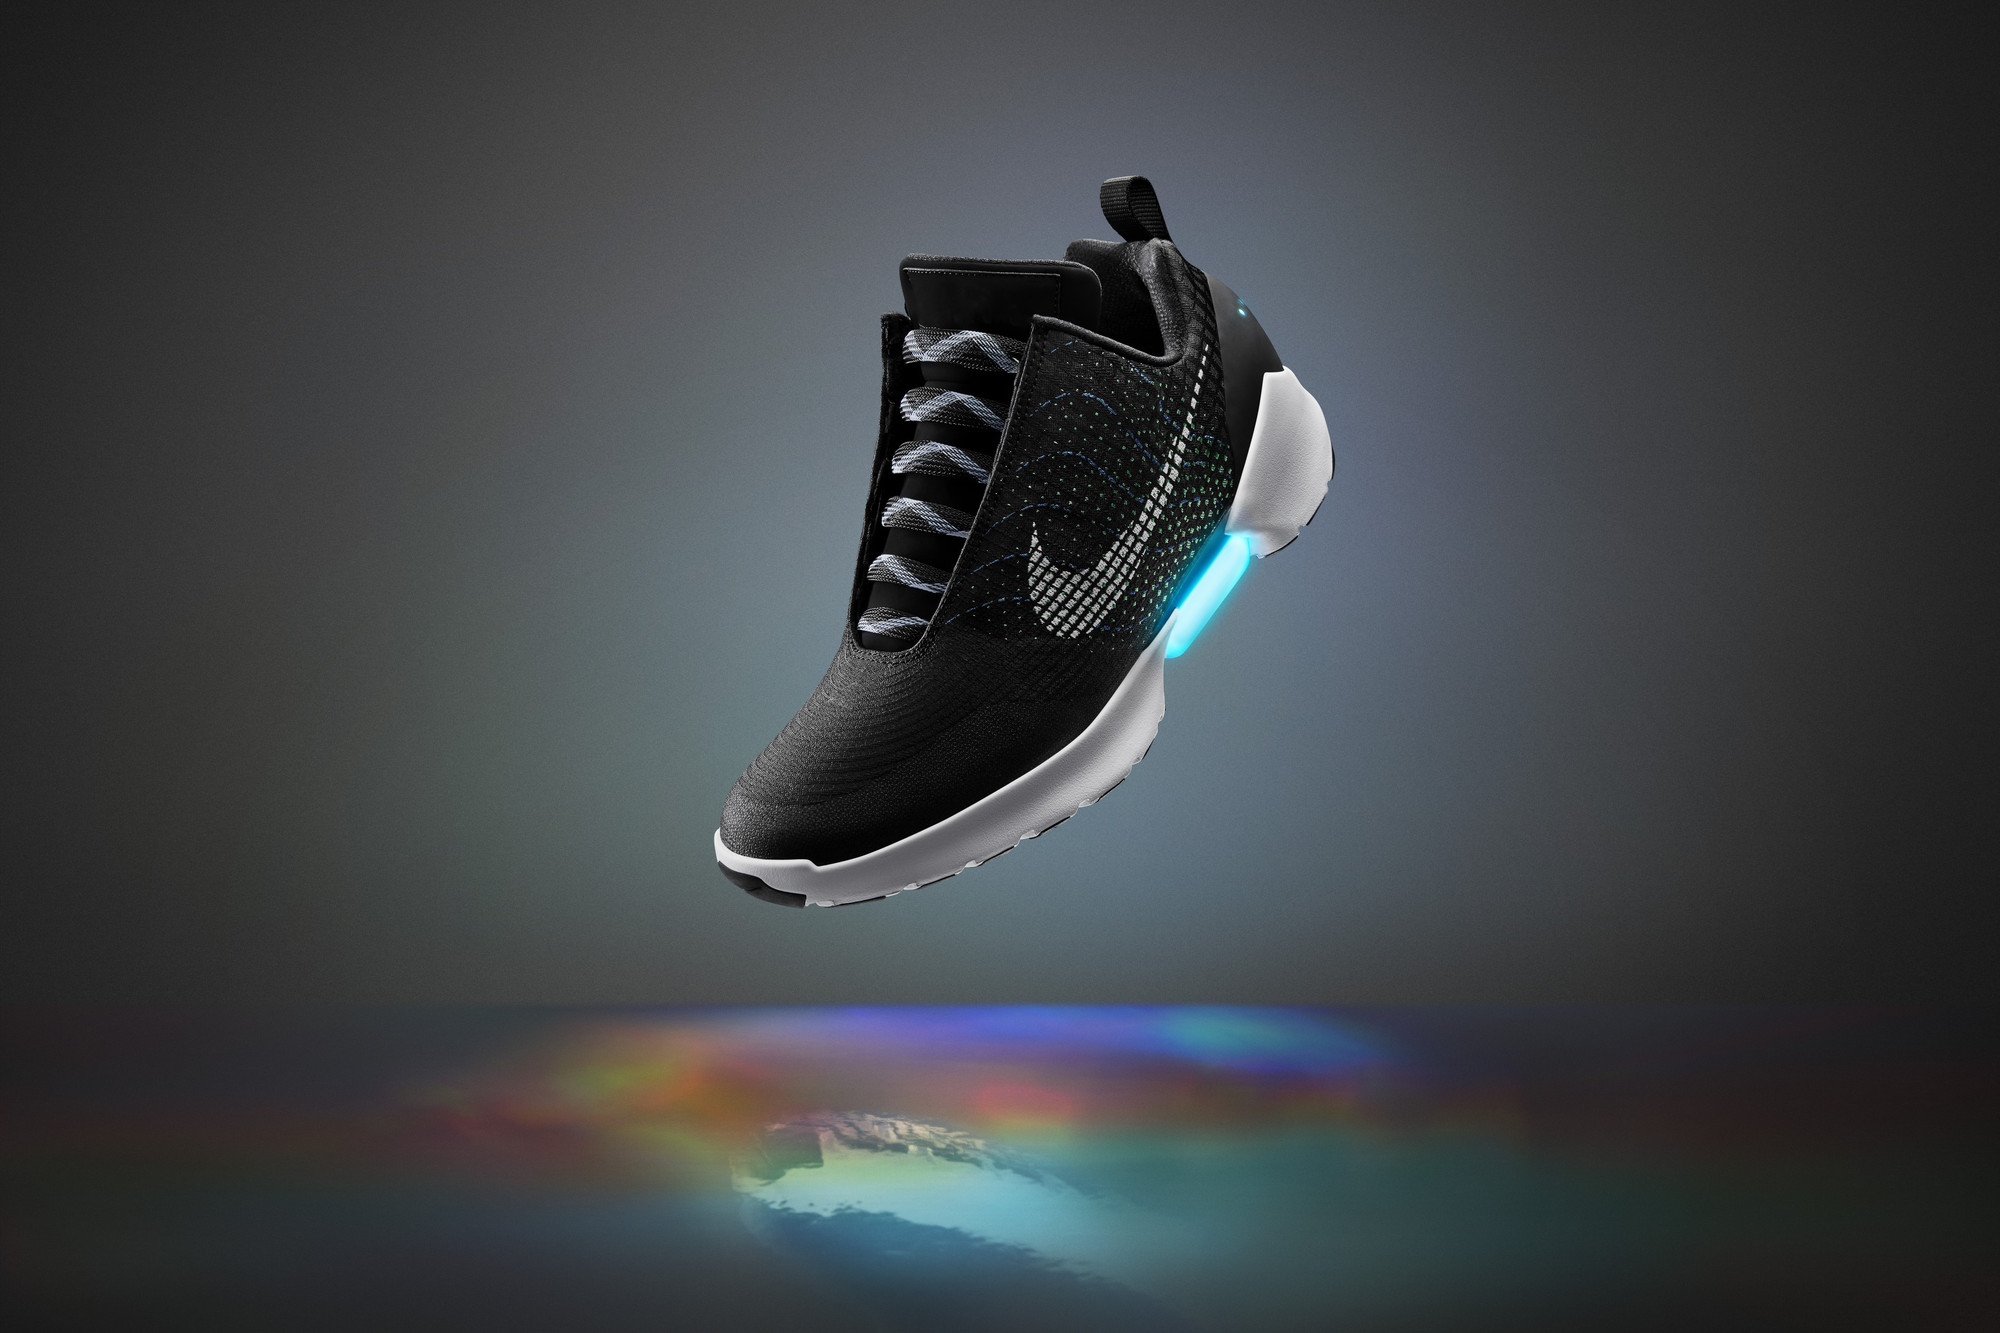 Smart shoes: Innovations revolutionizing the future of